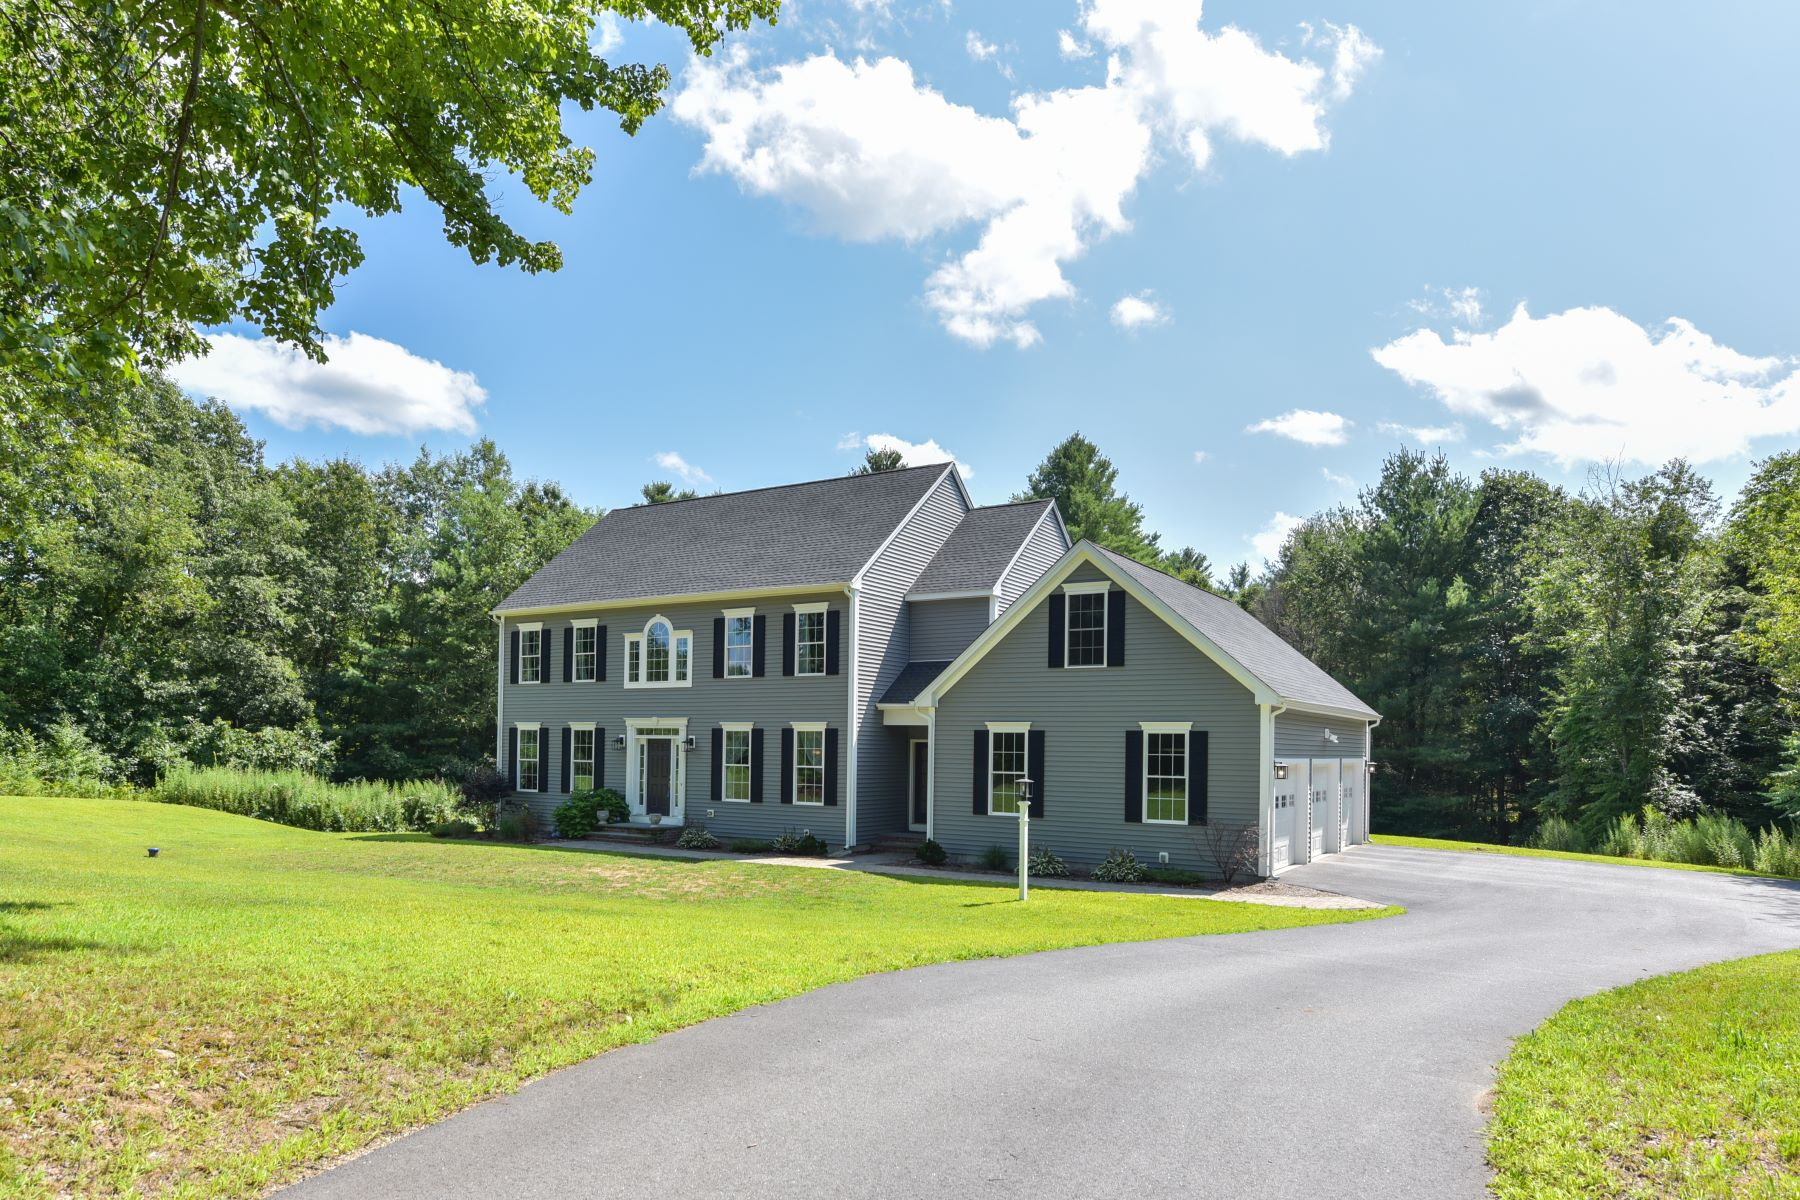 Single Family Homes for Active at 11 Flanders Crossing New Hartford, Connecticut 06057 United States